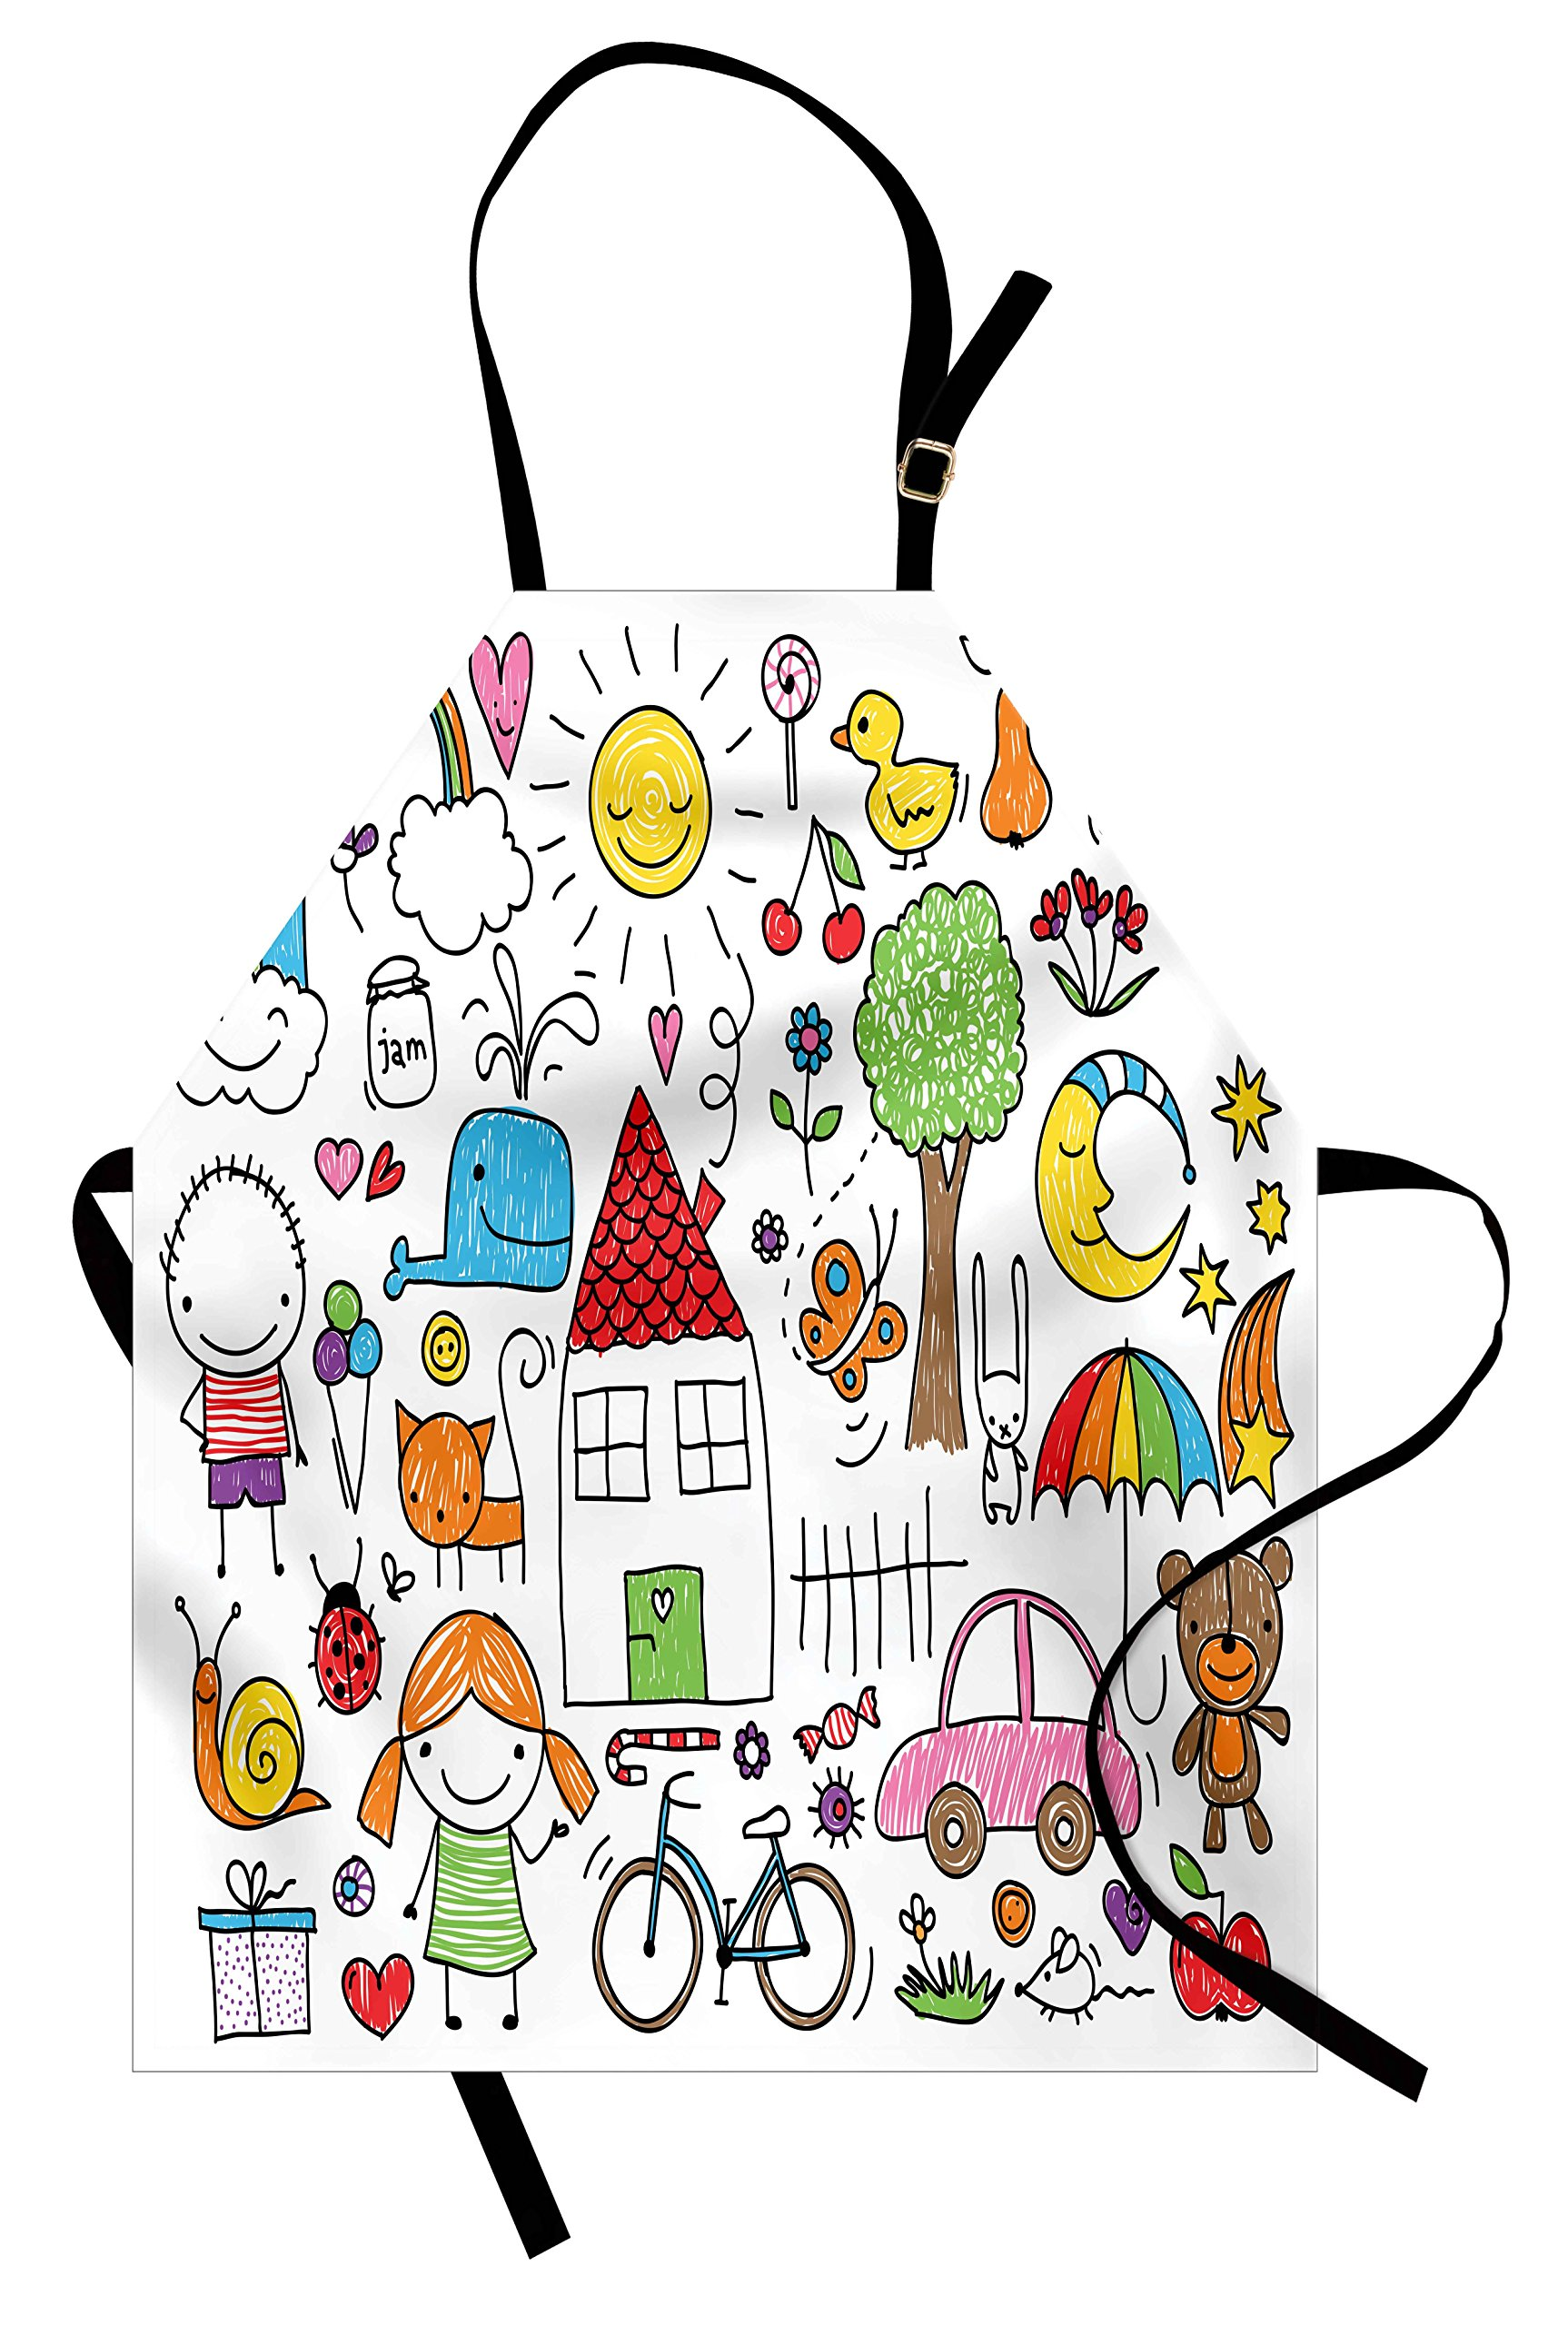 Ambesonne Doodle Apron, Simple Childlike Drawing of House Girl and Boy Teddy Bear and Various Other Things, Unisex Kitchen Bib Apron with Adjustable Neck for Cooking Baking Gardening, Multicolor